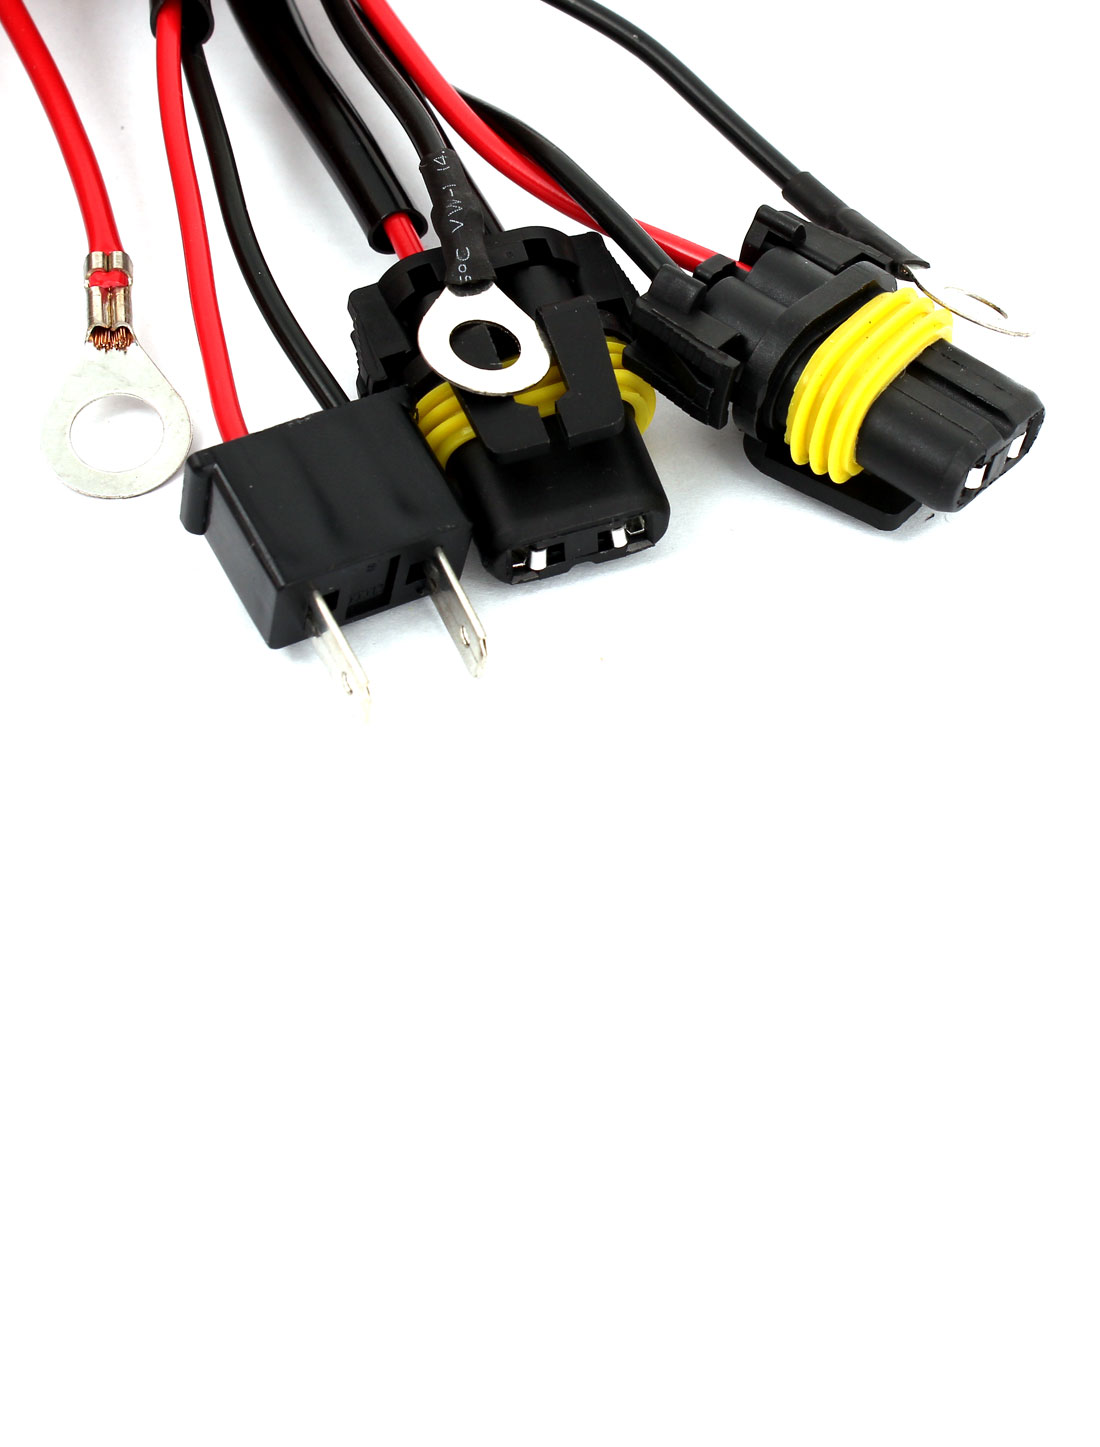 small resolution of h7 xenon hid conversion kit relay wiring harness wire upgrade pack for car walmart canada